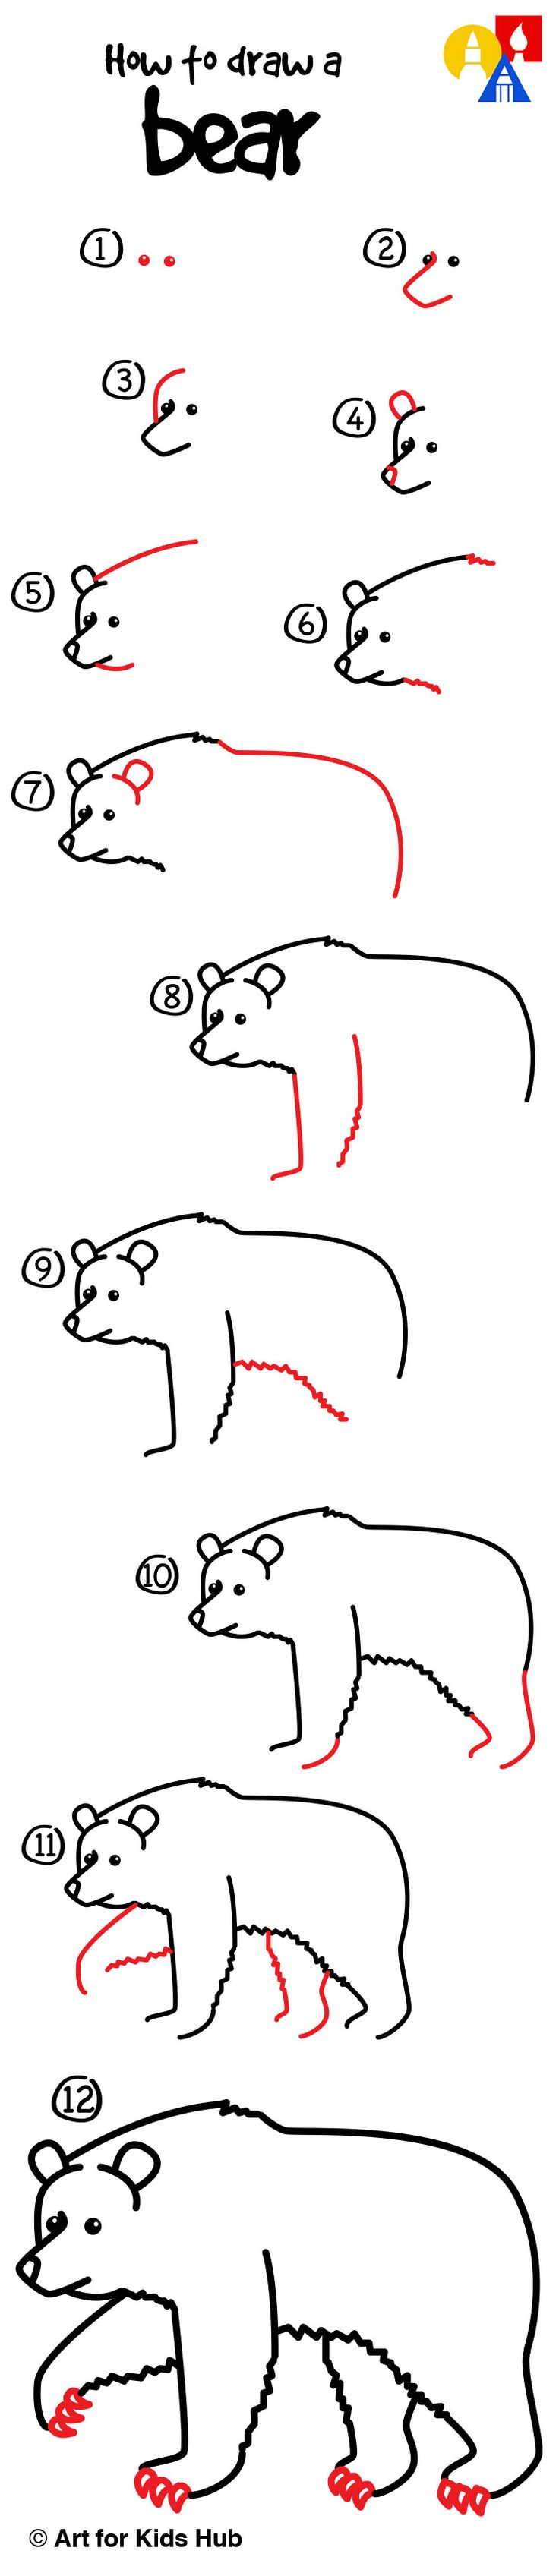 62 best afkh step by steps images on pinterest easy drawings easy step by step instructions on how to draw a bear altavistaventures Image collections